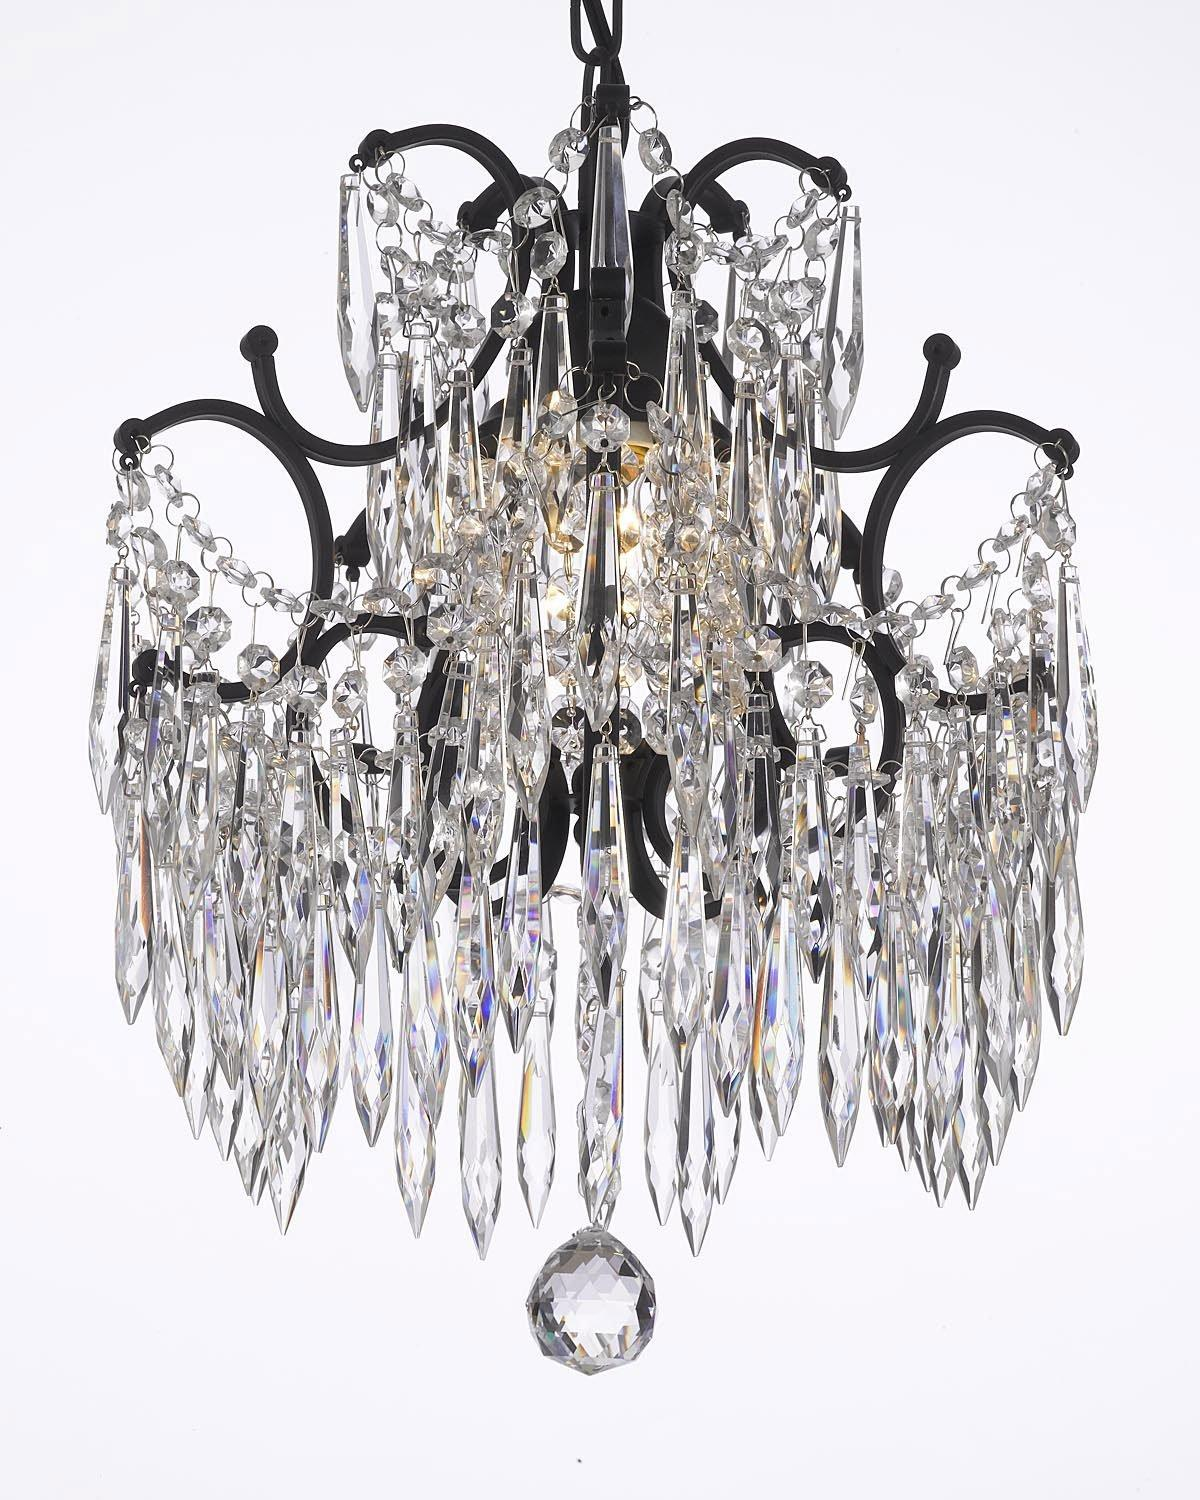 Wrought Iron Crystal Chandelier Dressed With Icicle Crystals